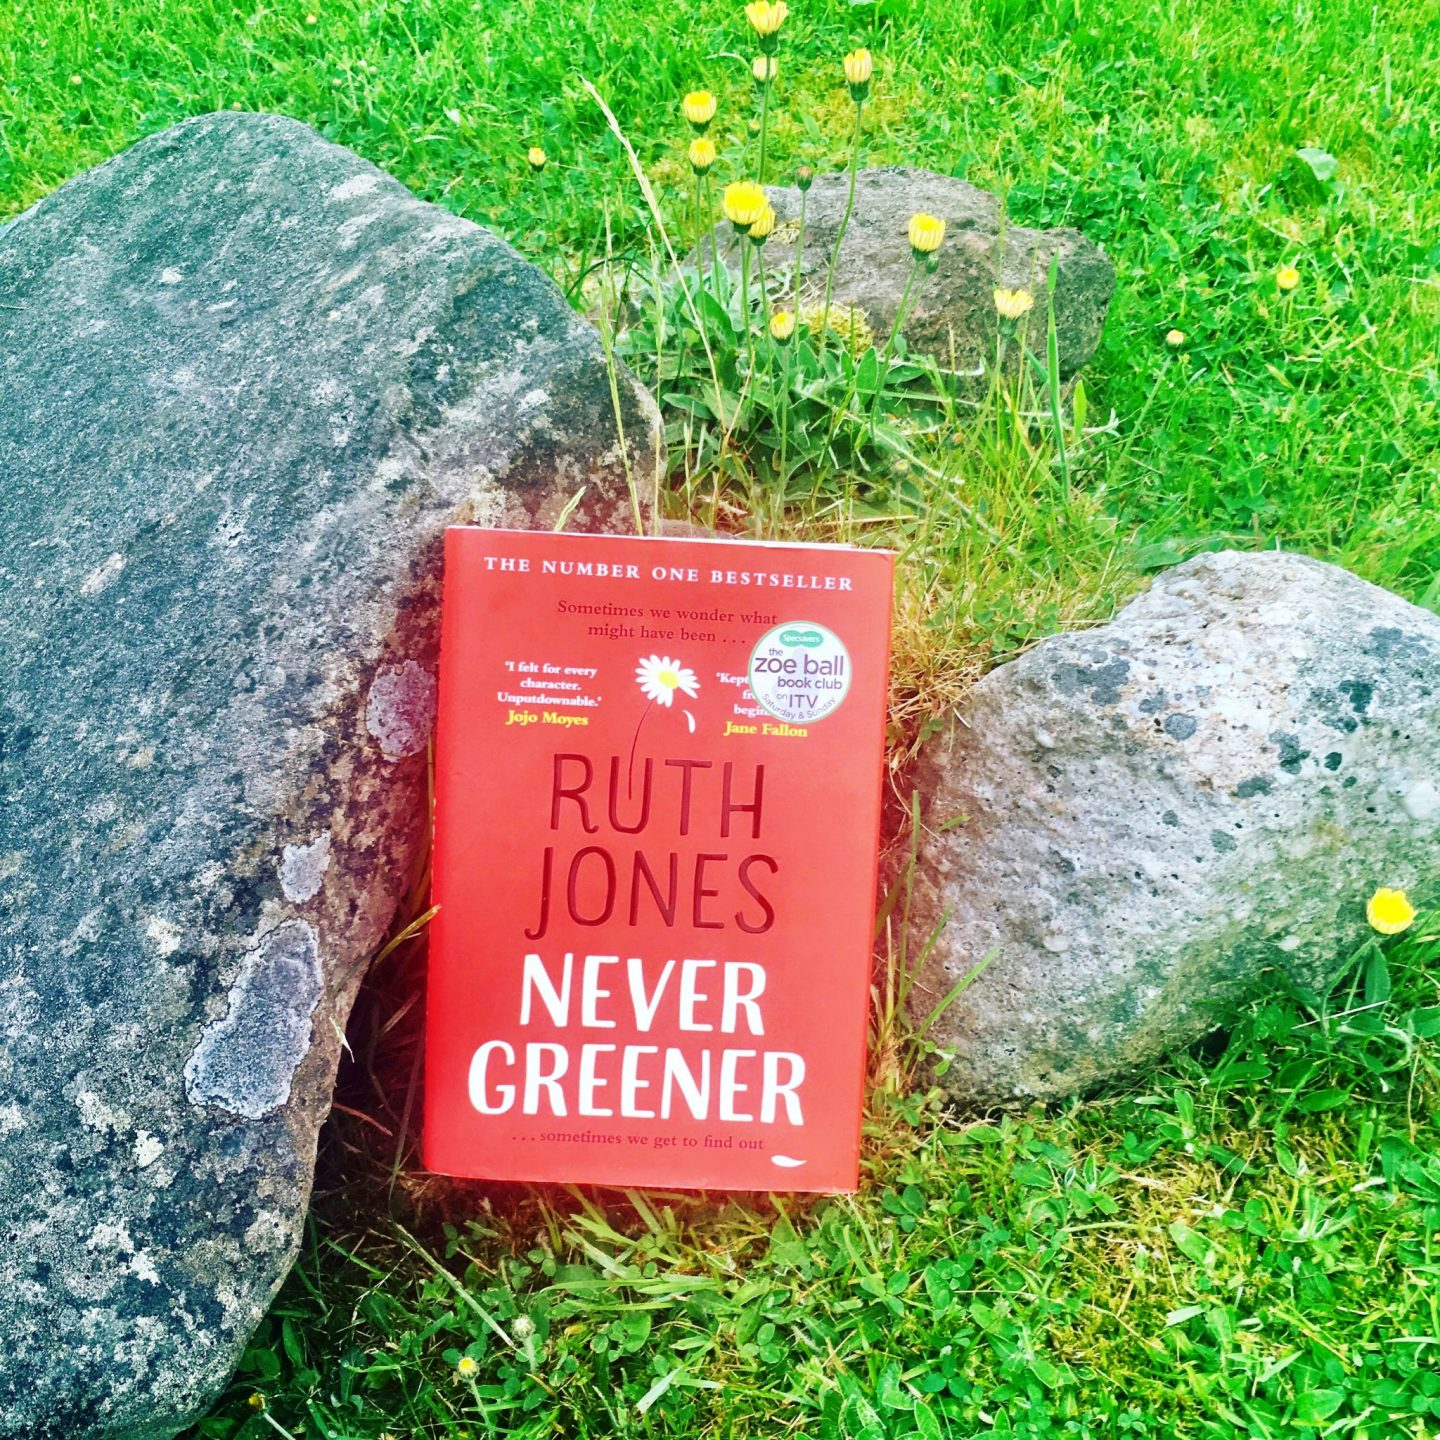 Ruth Jones and Never Greener at The Hay Festival